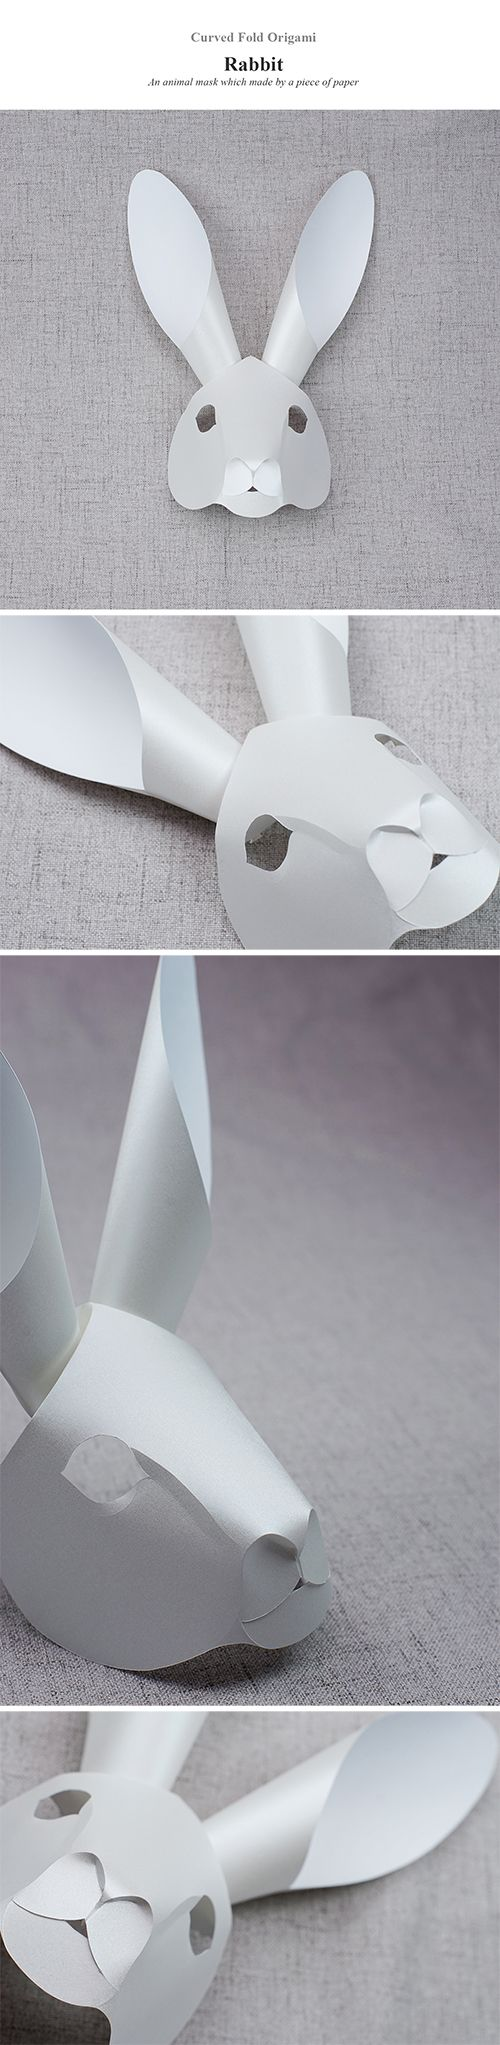 Curved Fold Origami: Rabbit. Animal mask which made by only a piece of paper.